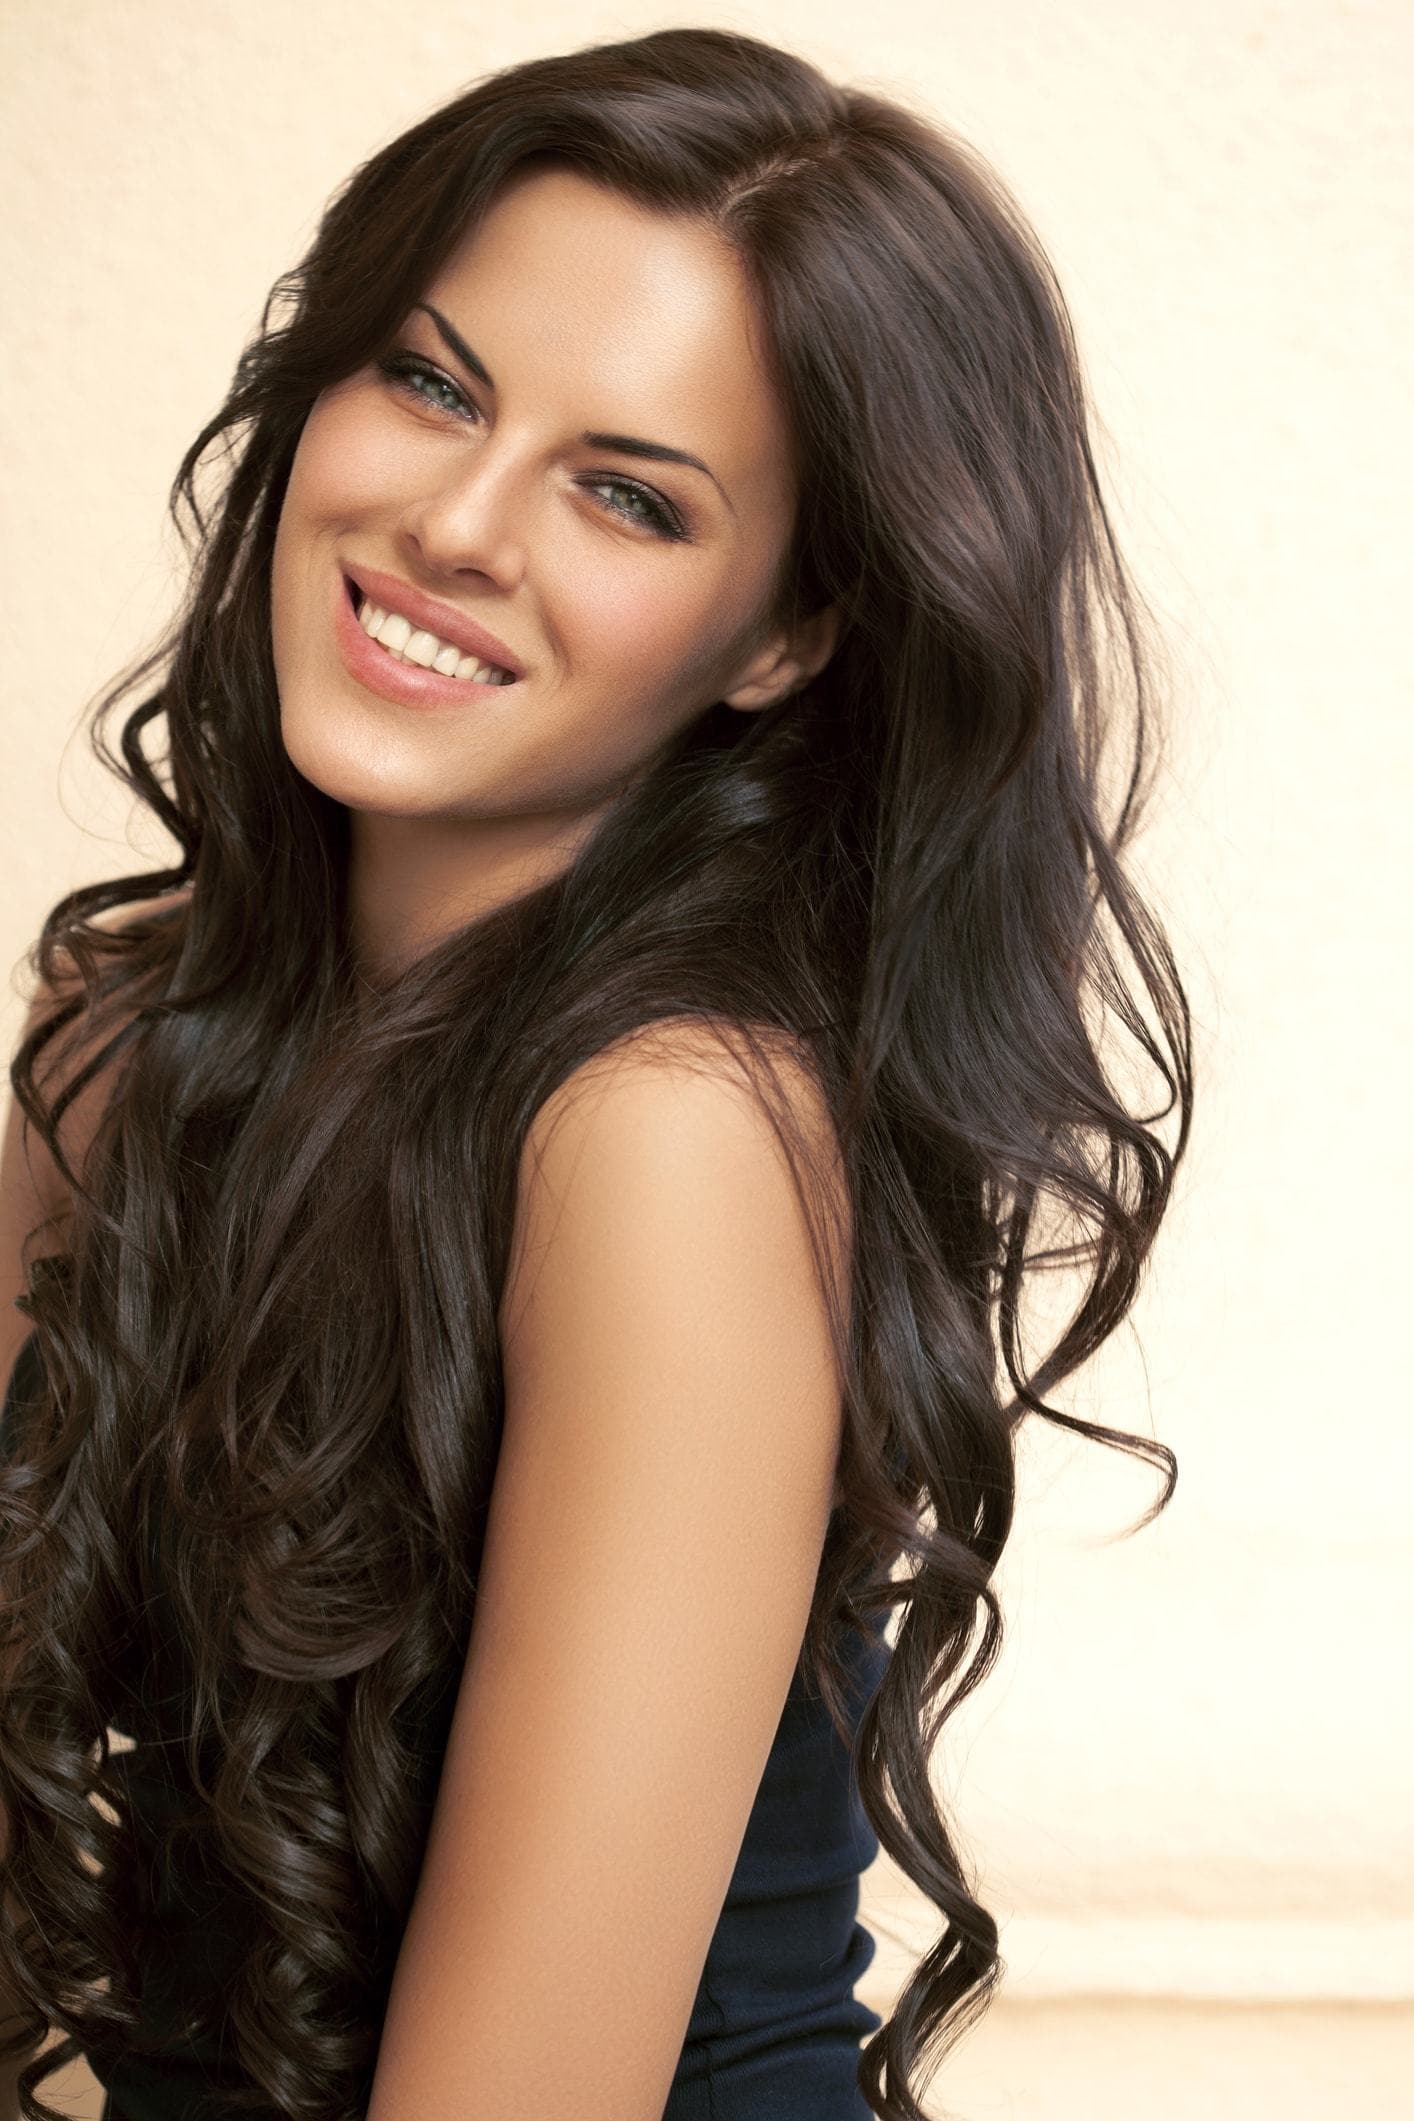 Professional Hairstyles For Long Hair: 25 Easy Styles You ...